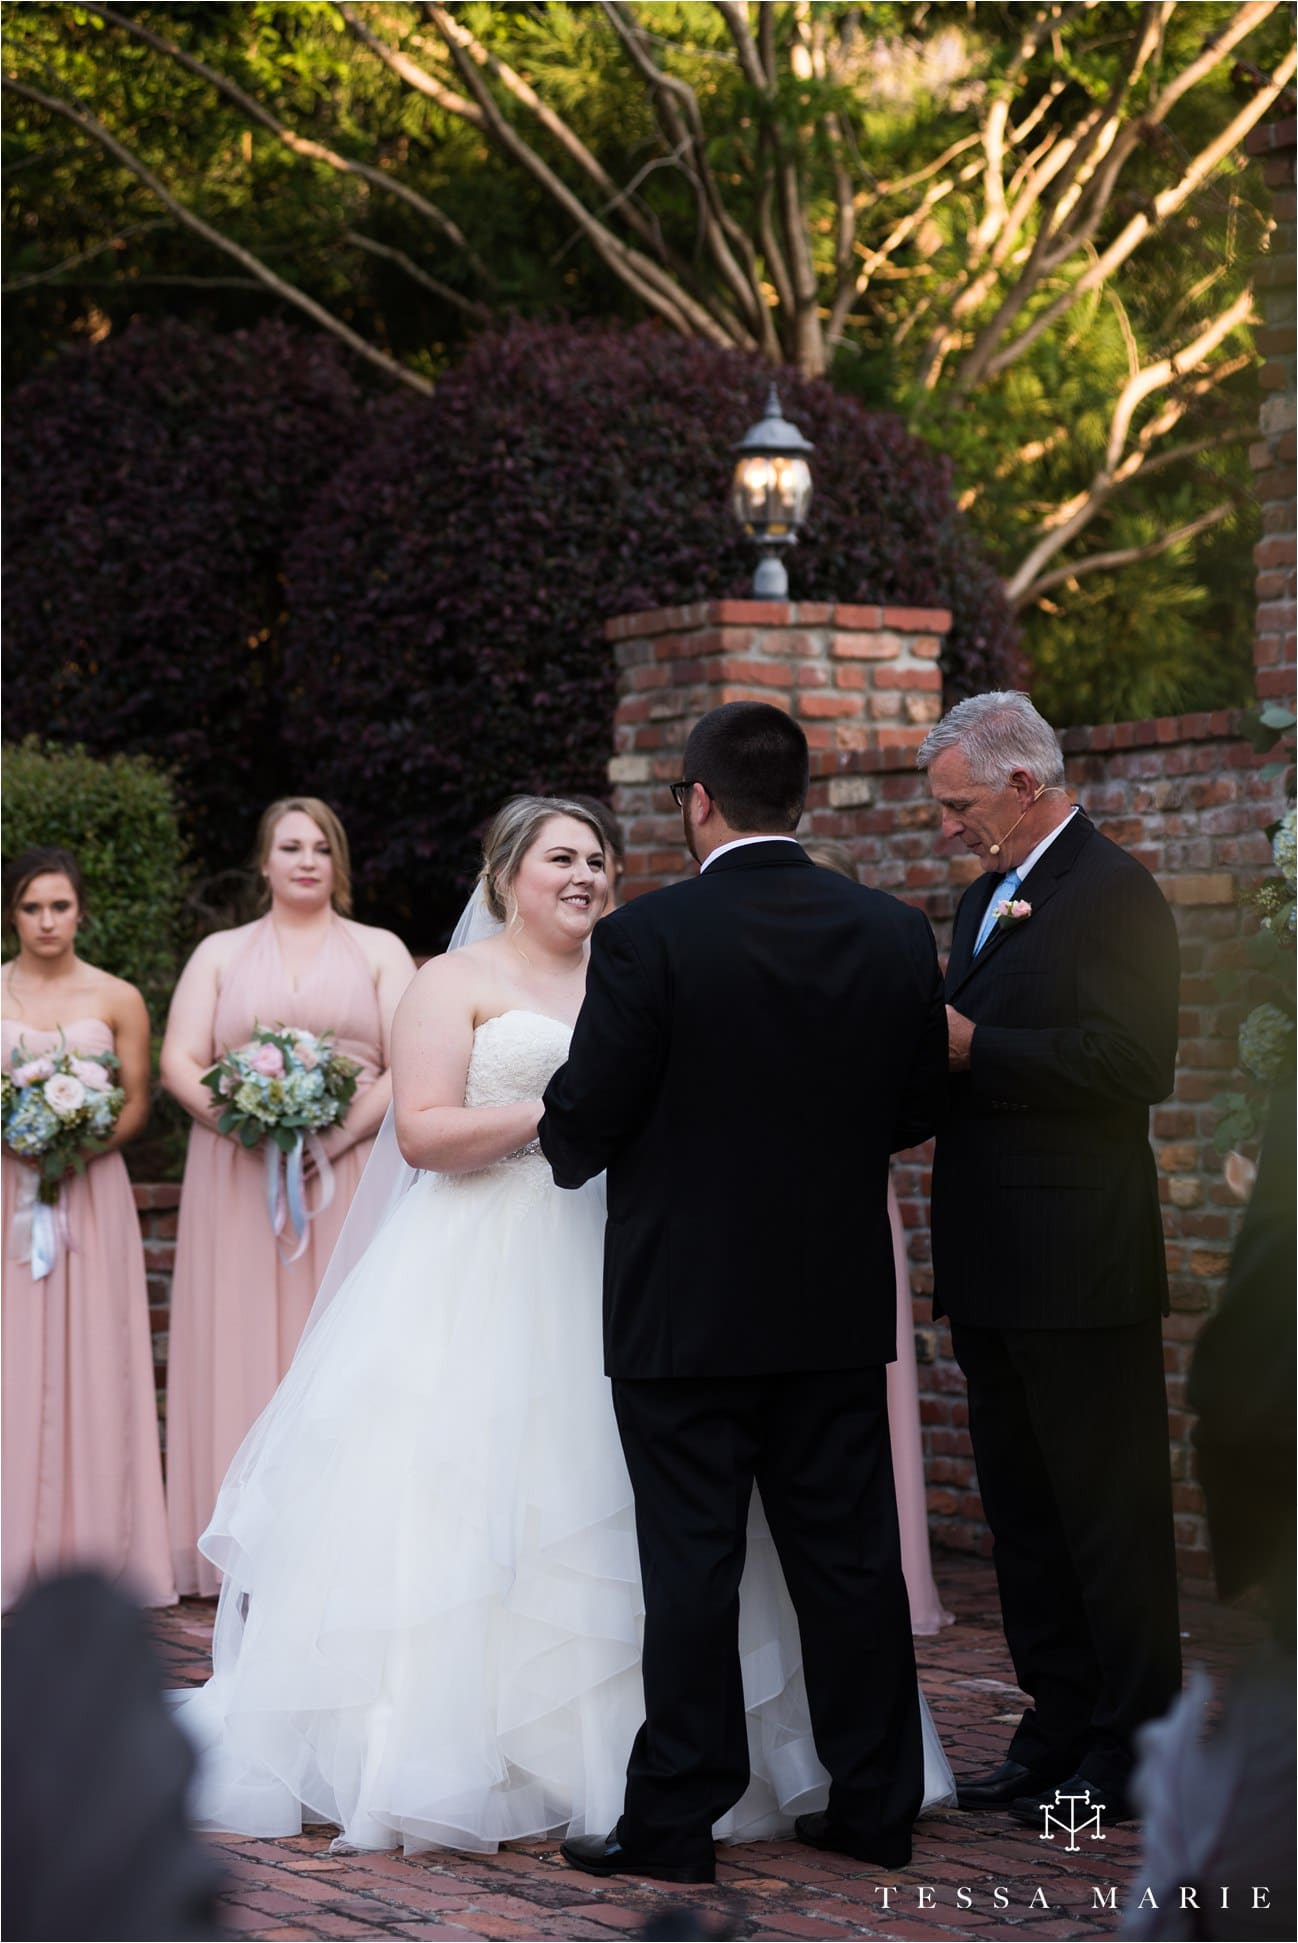 tessa_marie_weddings_carl_house_Wedding_pictures_dj_tod_0403